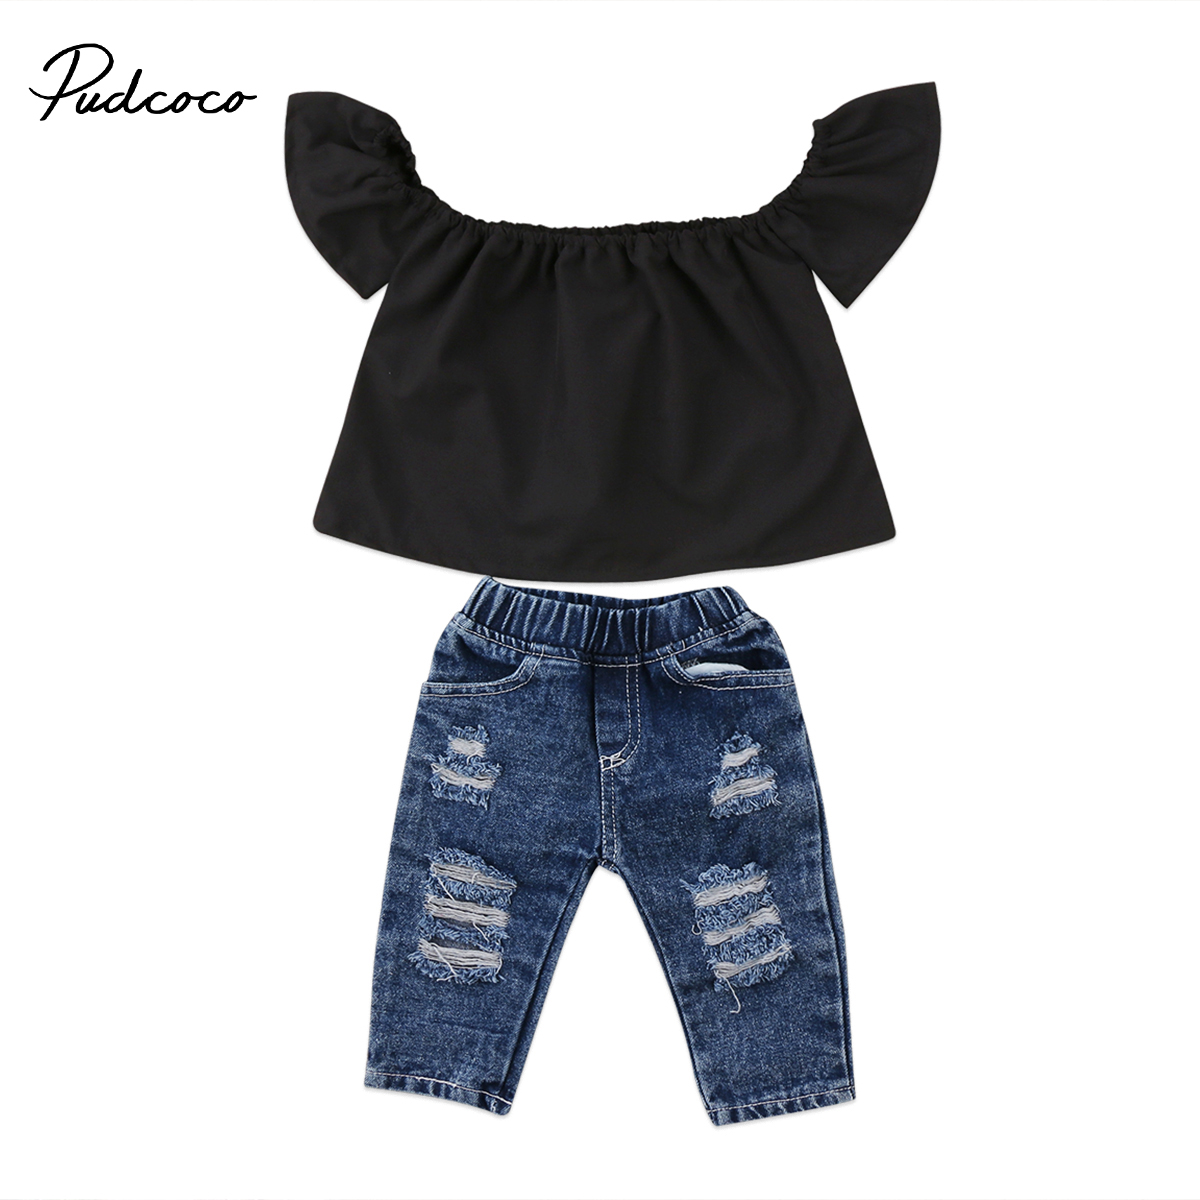 Toddler Baby Kids Girls Denim Ruffle Clothing Set Off Shoulder Tops Denim Pants Outfits Set Clothes floral toddler girl clothing 2017 summer kids clothes baby girls off shoulder ruffle crop tops high waist shorts outfits set 3pc